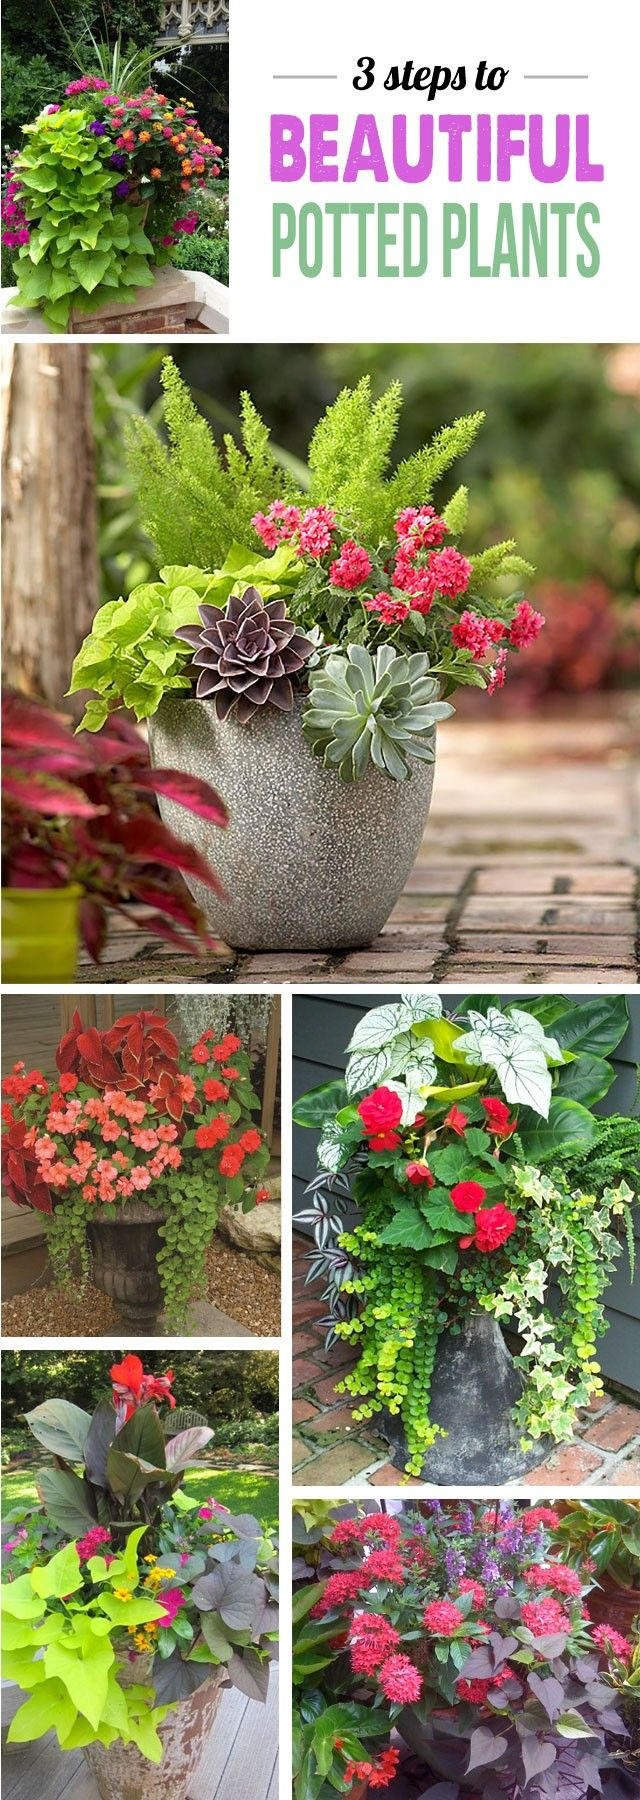 214 best Gardening images on Pinterest Plants Landscaping and